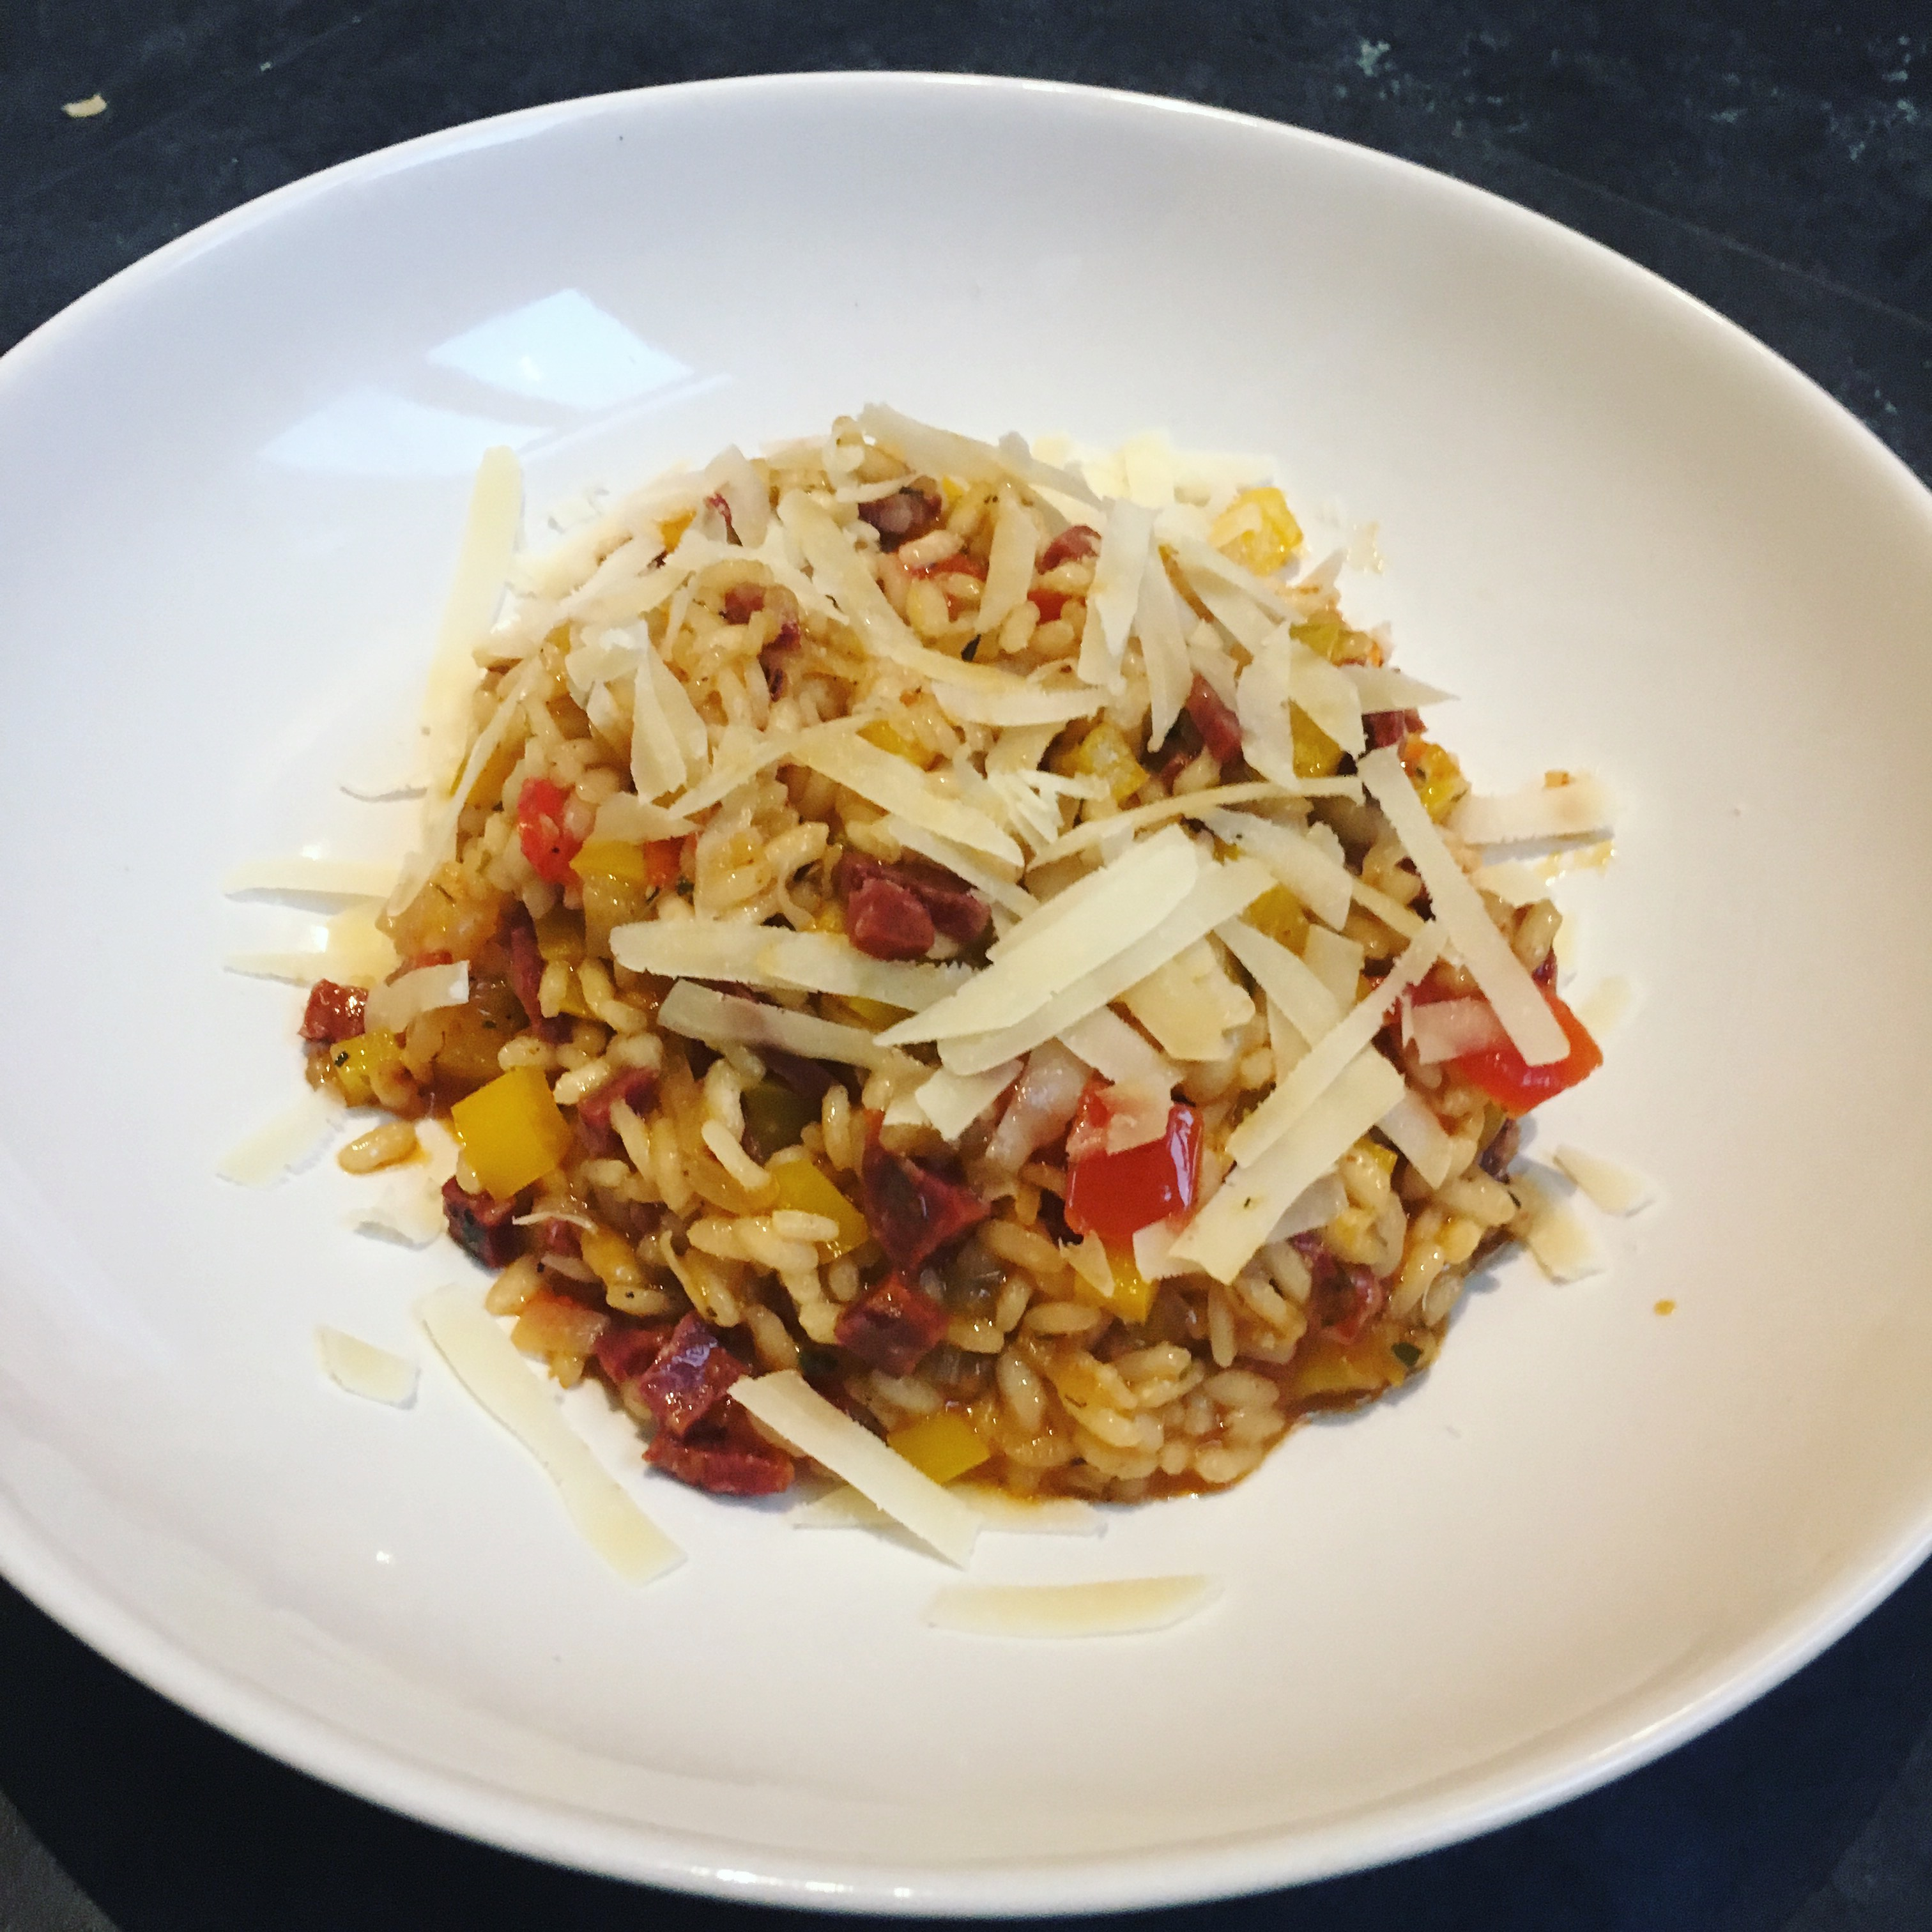 Spaanse risotto met chorizo